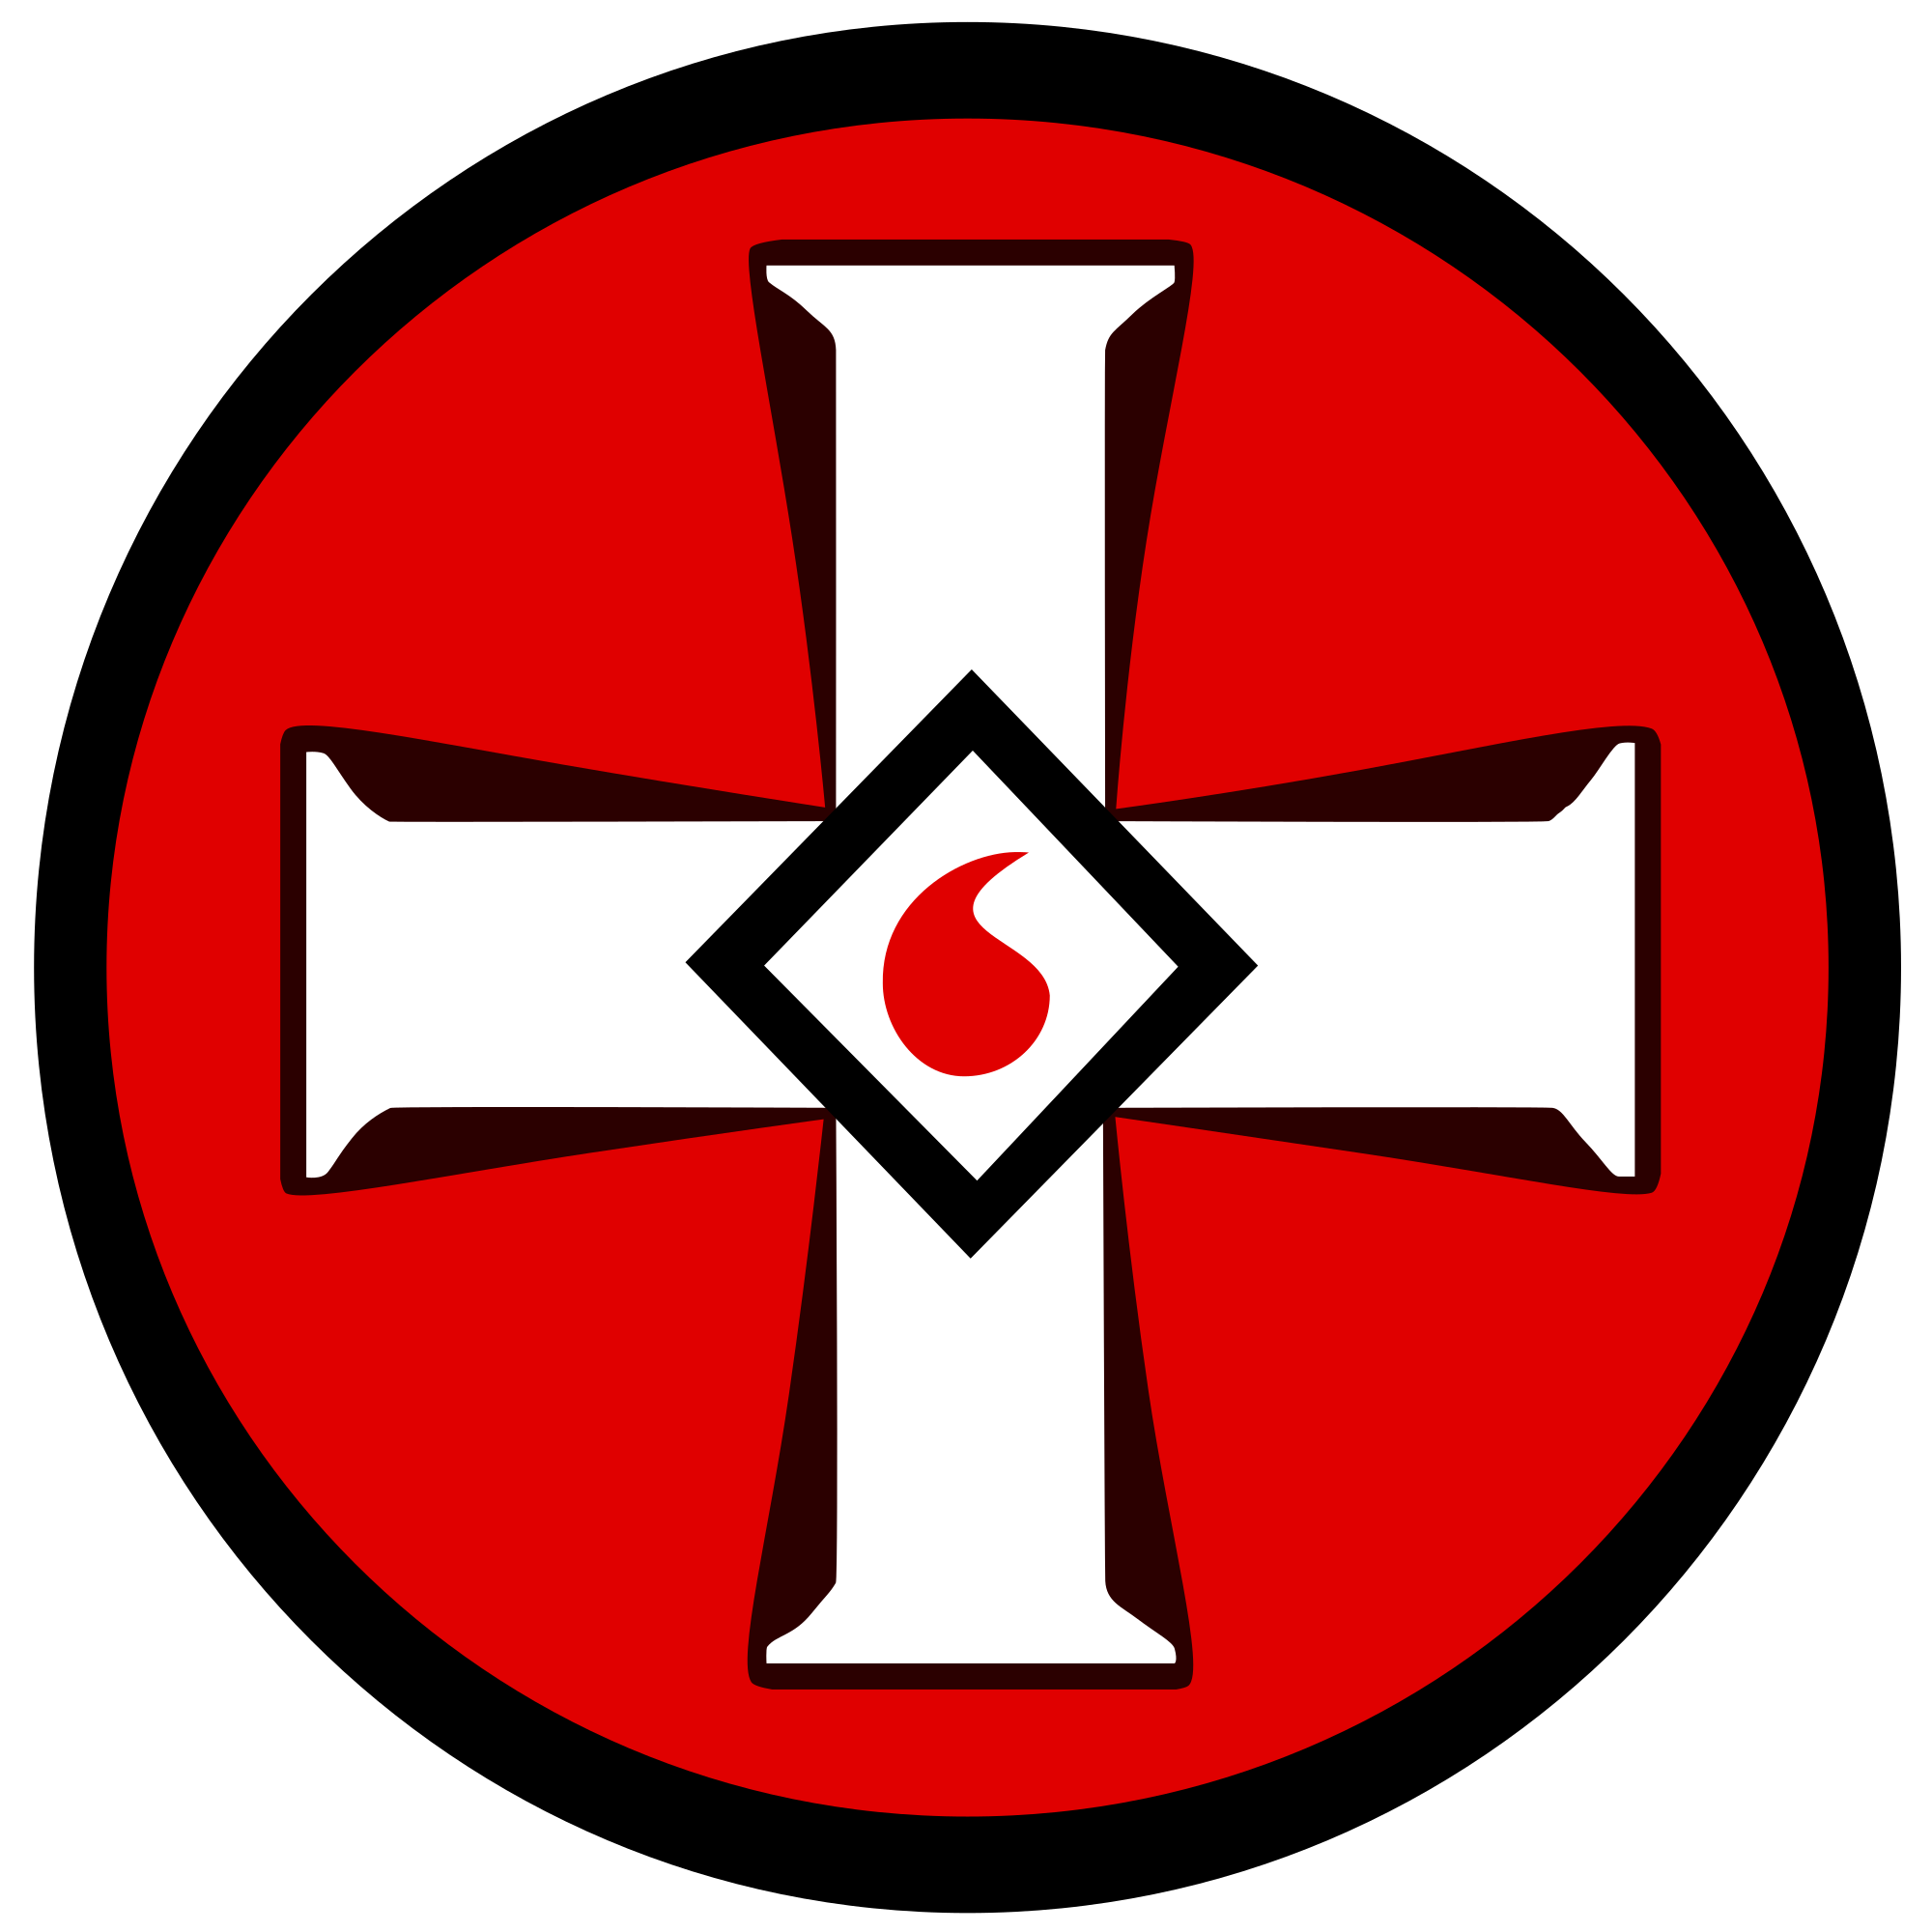 Kkk mask png. File svg wikimedia commons